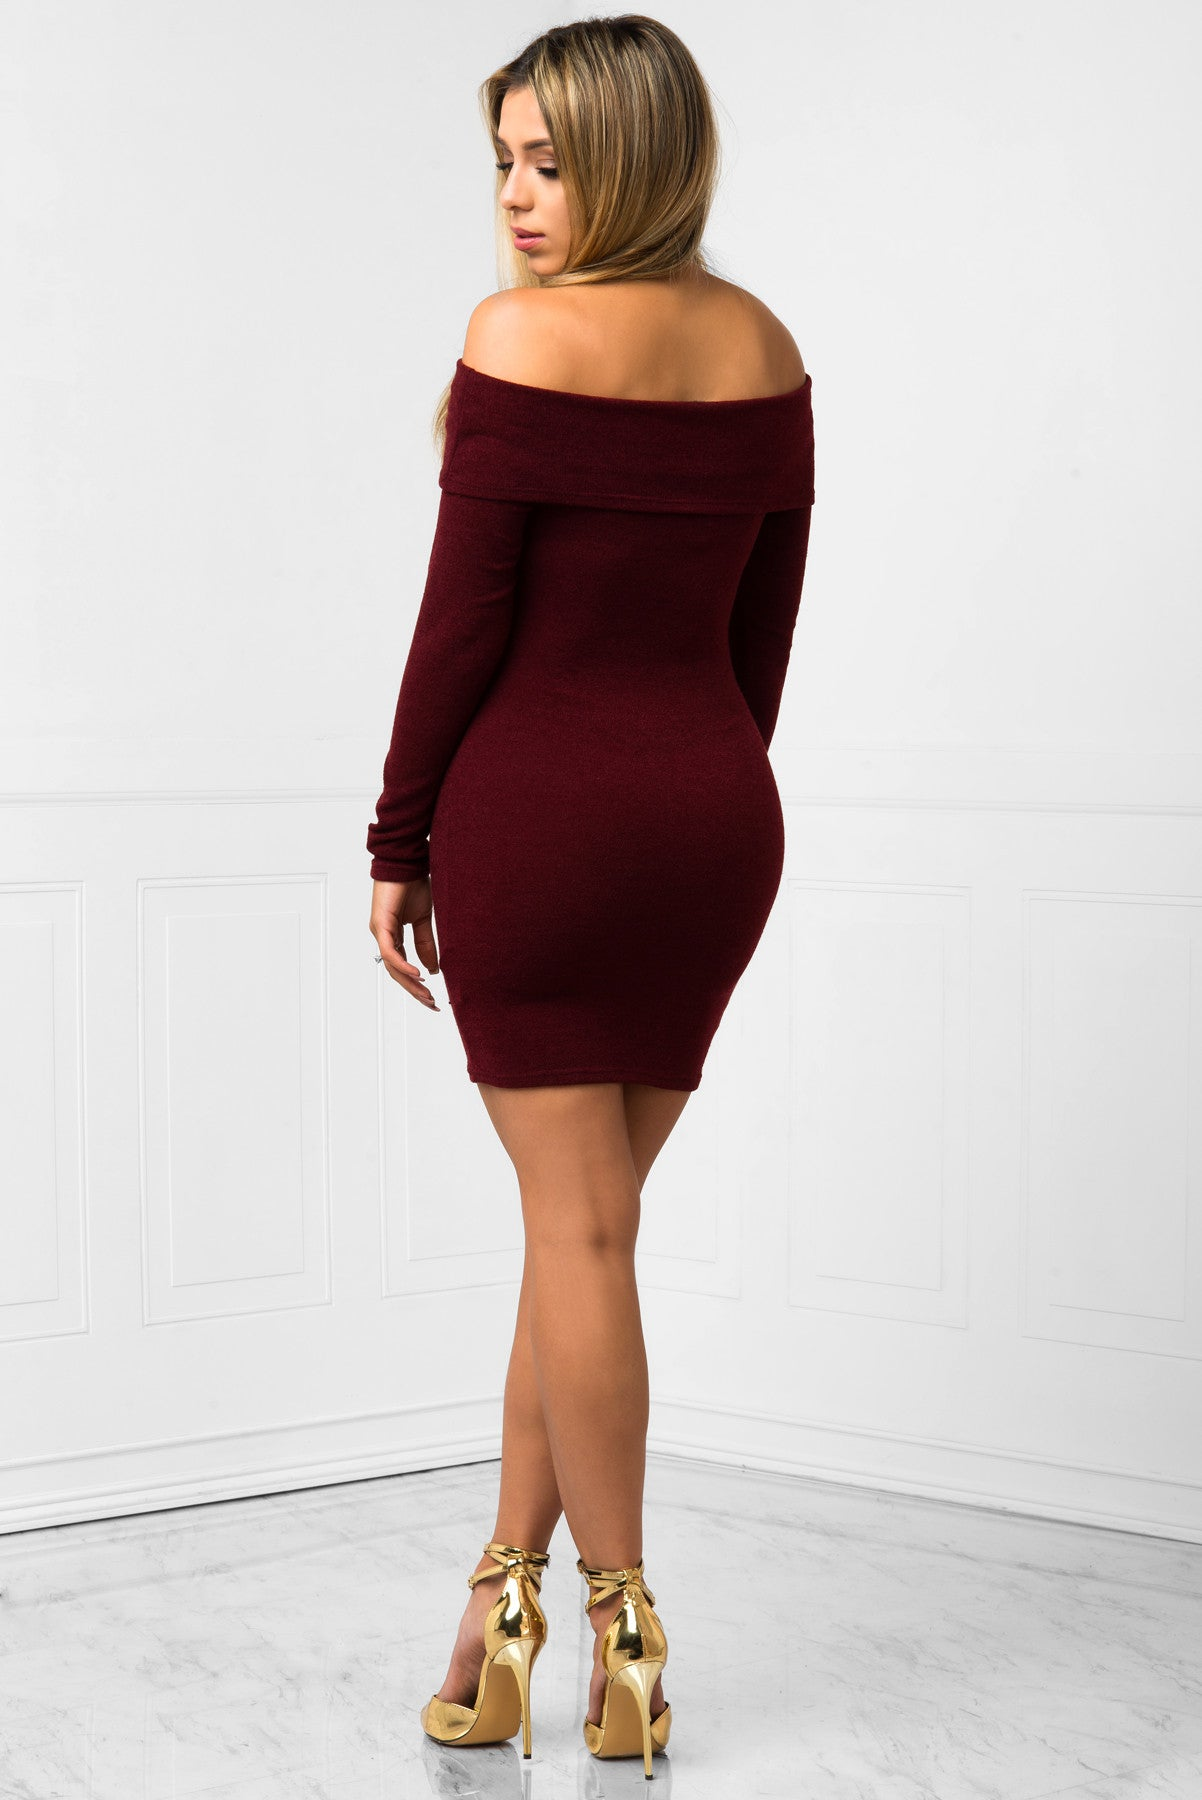 Kelsey Burgundy Dress - Fashion Effect Store  - 3